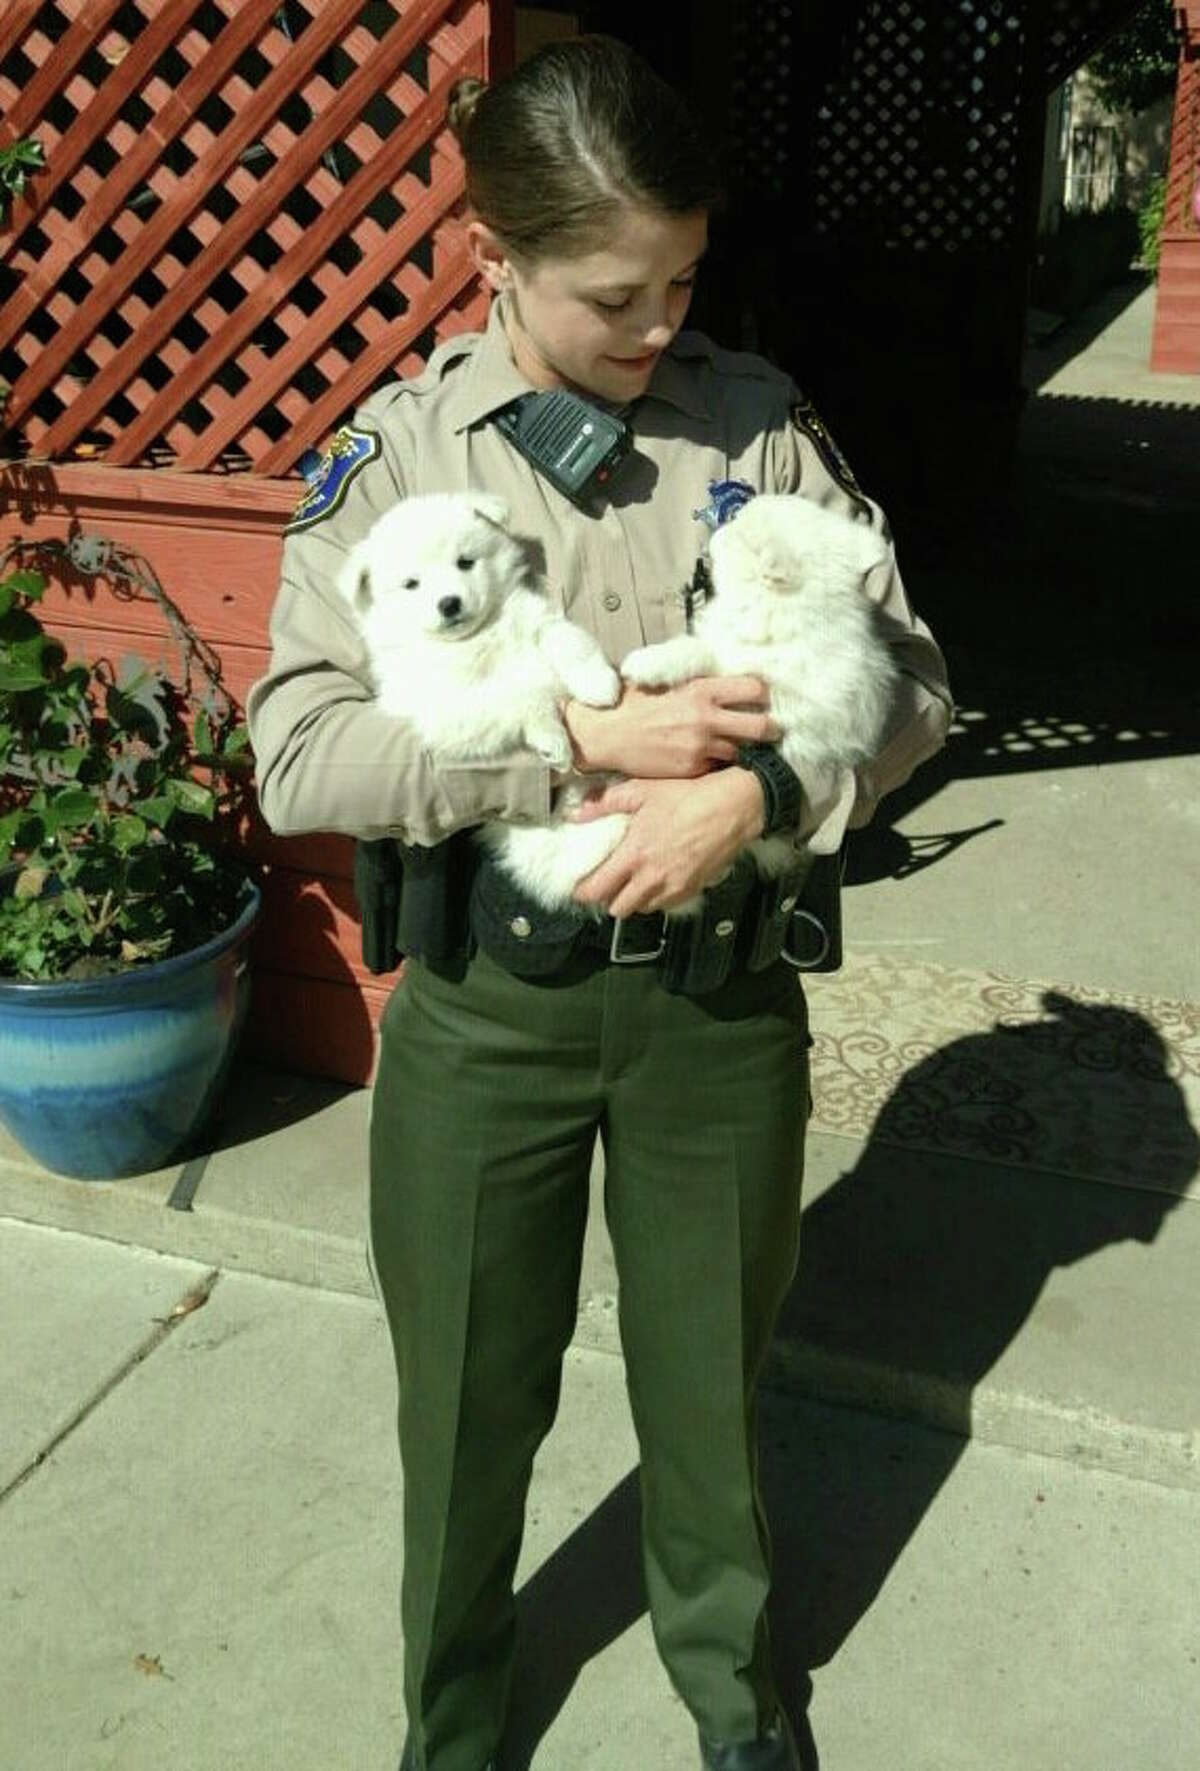 The two pups who set off a residential alarm in Santa Clara County.